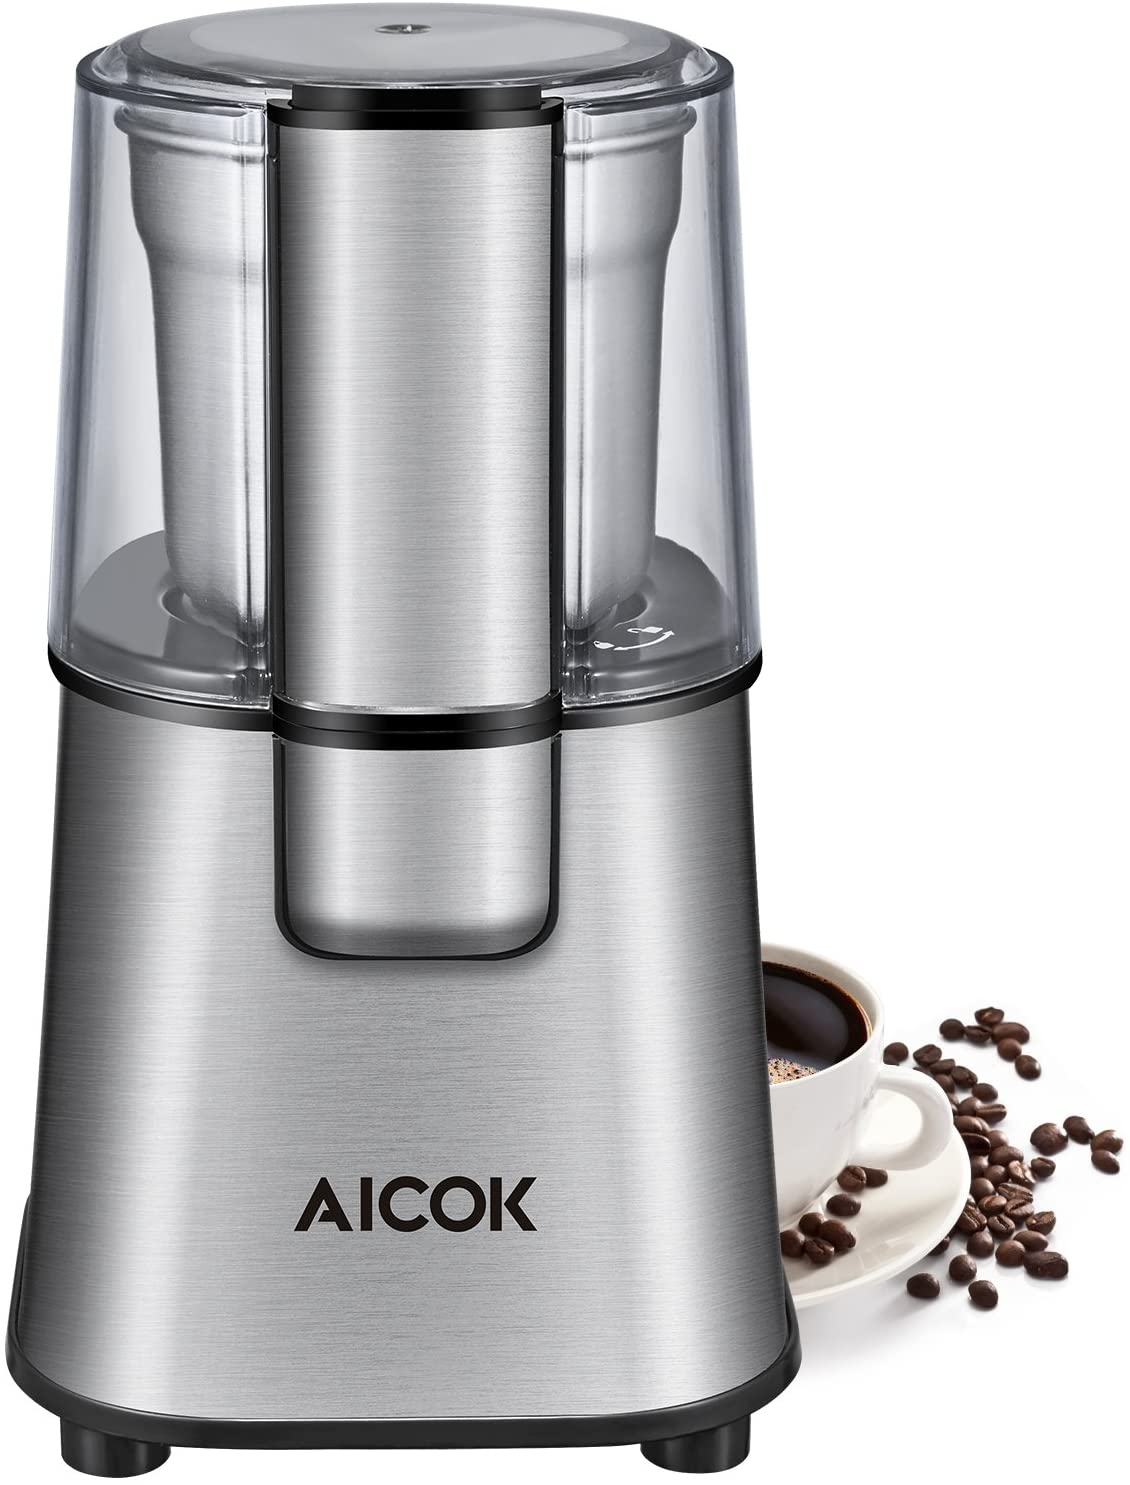 AICOK Large Capacity Detachable Coffee & Spice Grinder